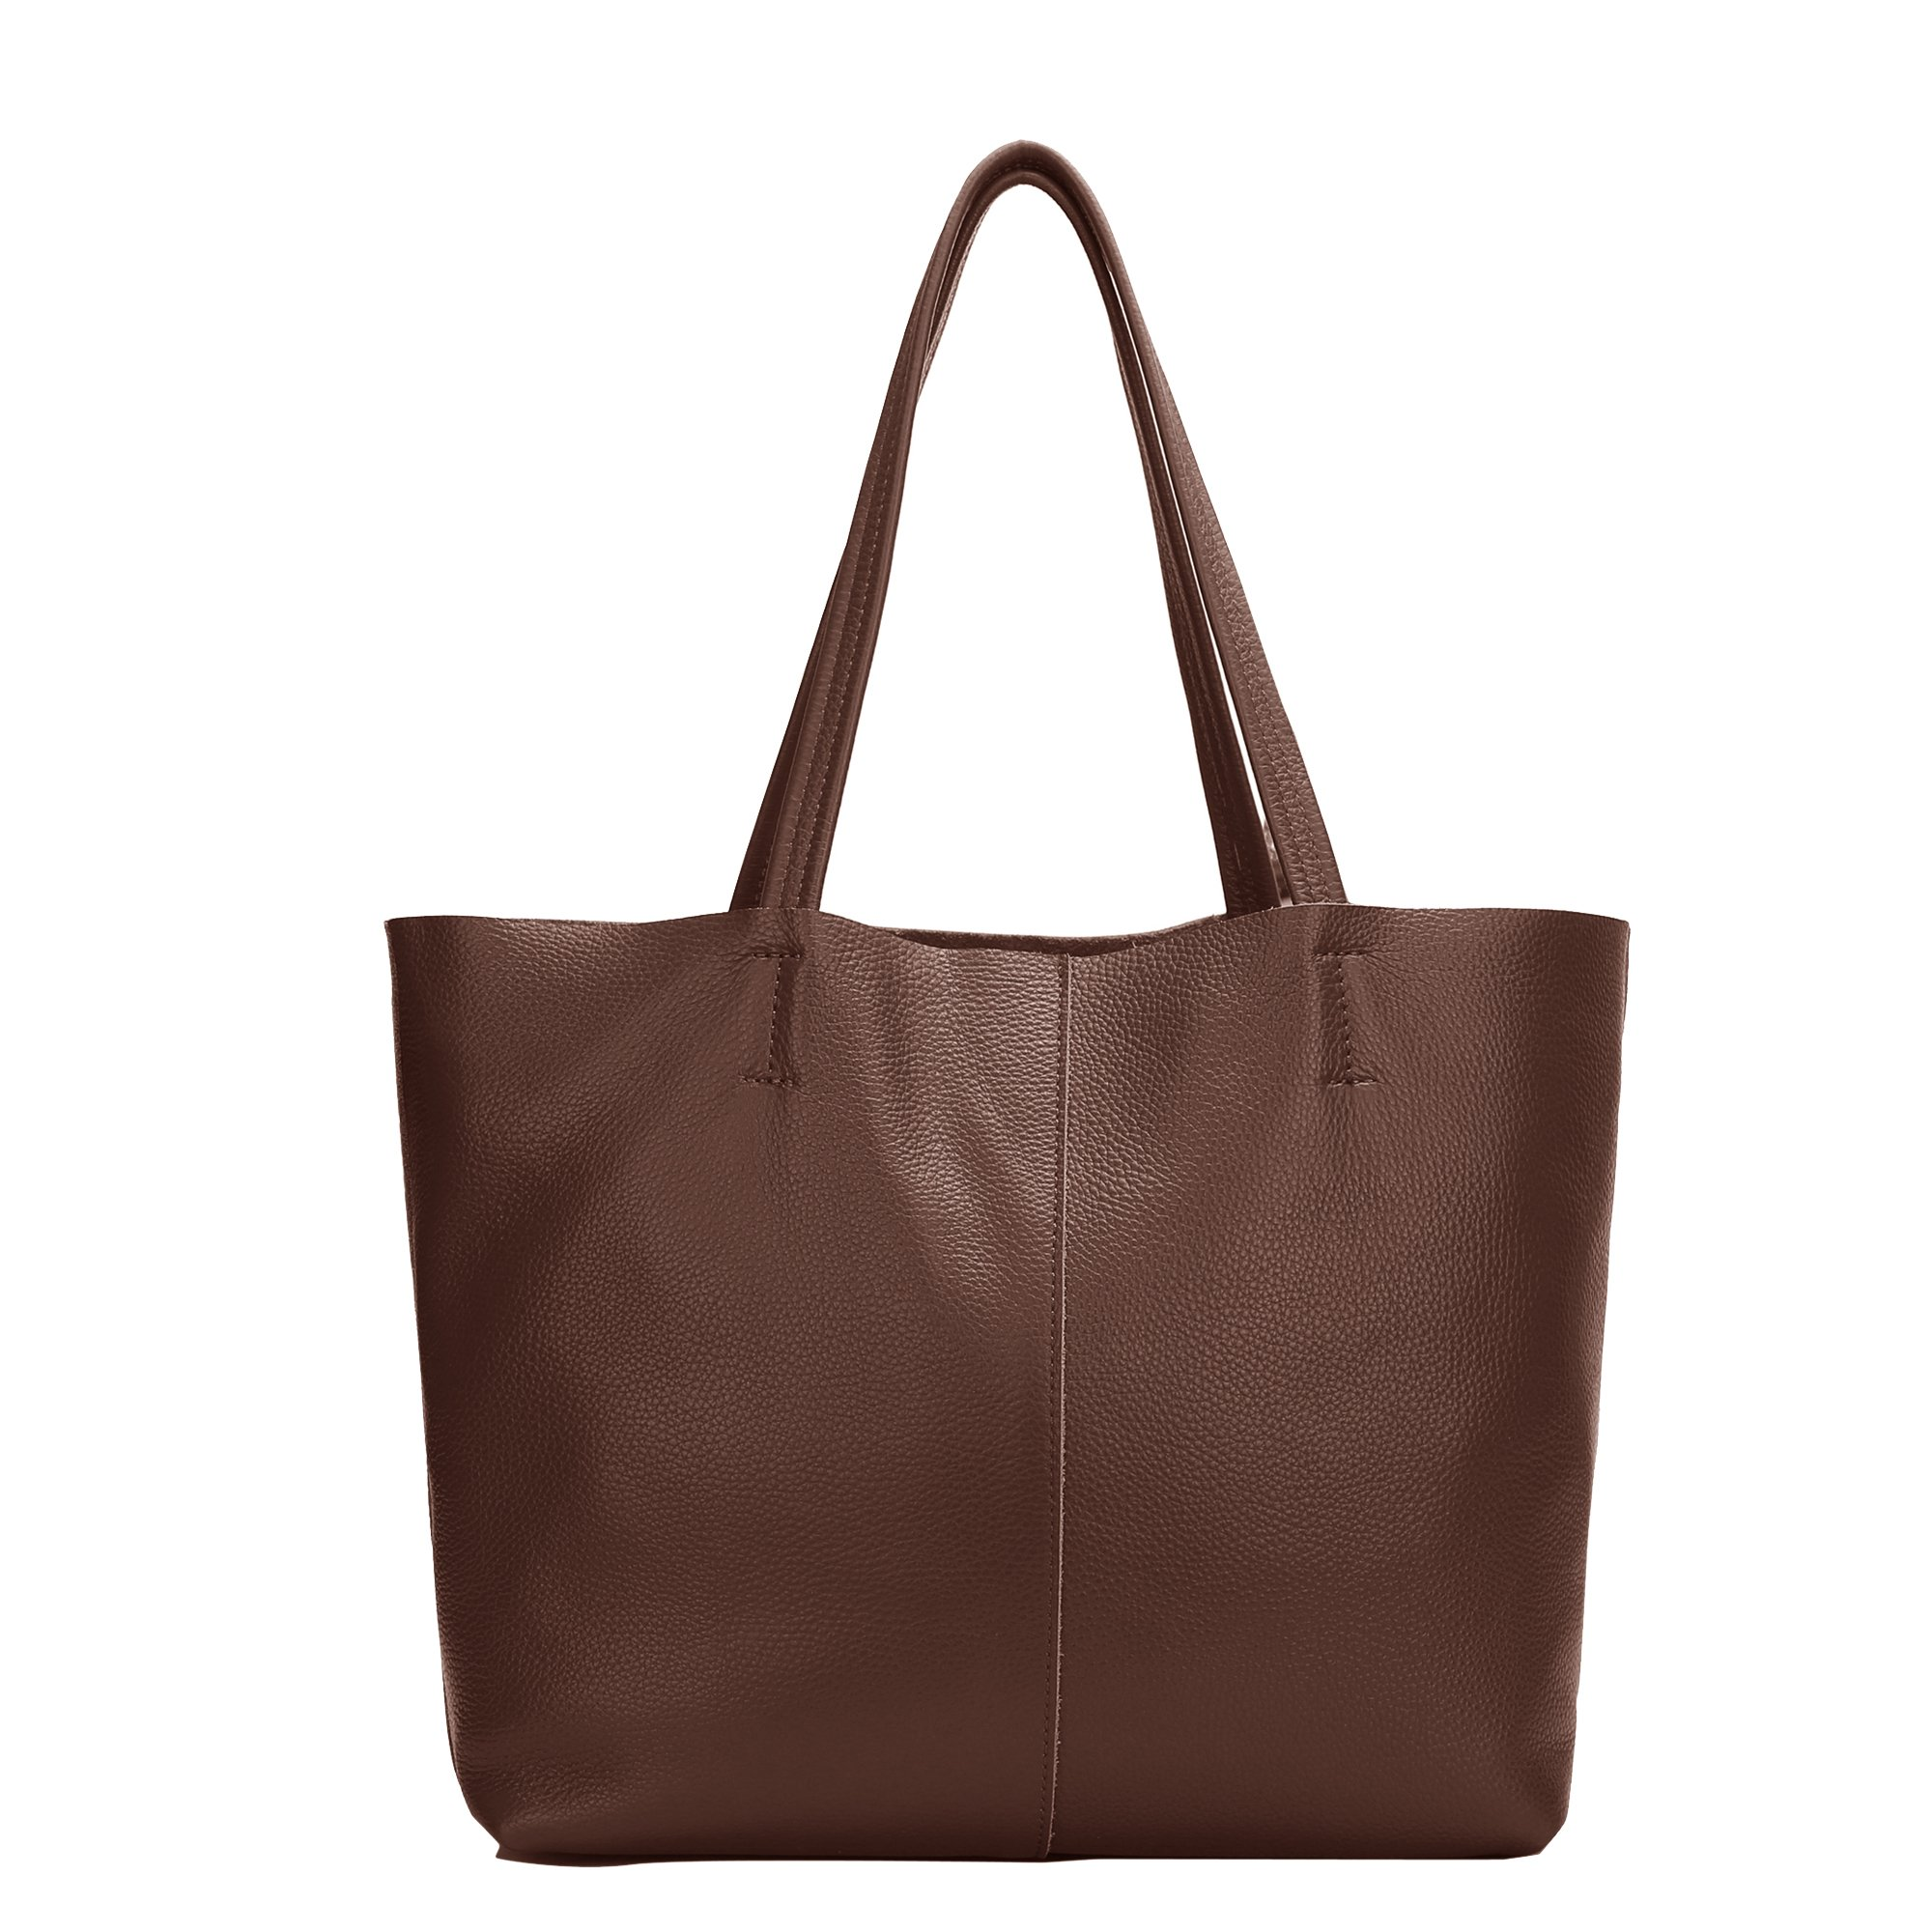 Damero Women's Soft Vintage Leather Shoulder Bag with Removable Lining (Medium, Coffee)